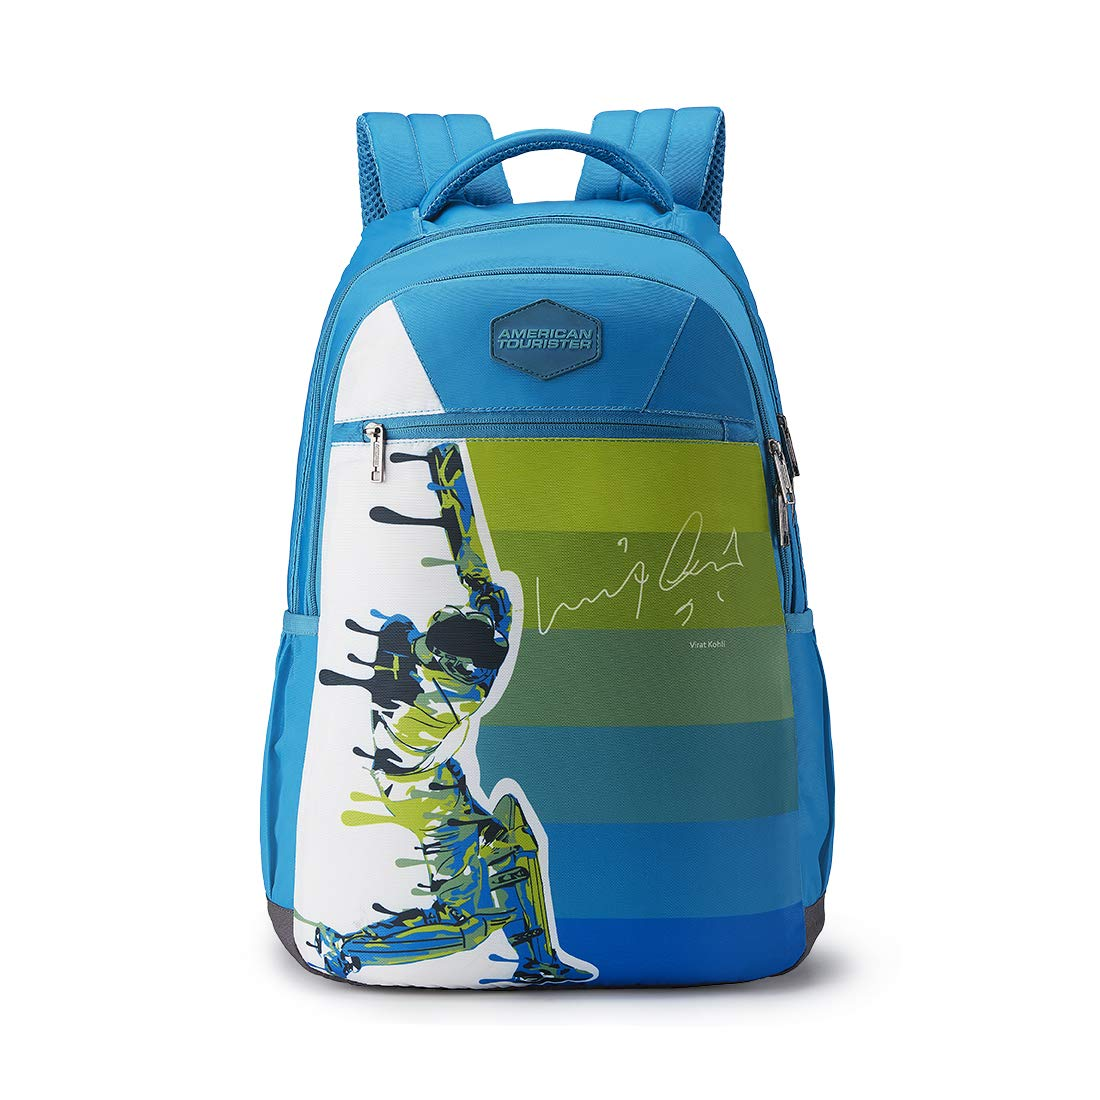 American Tourister kids backpack